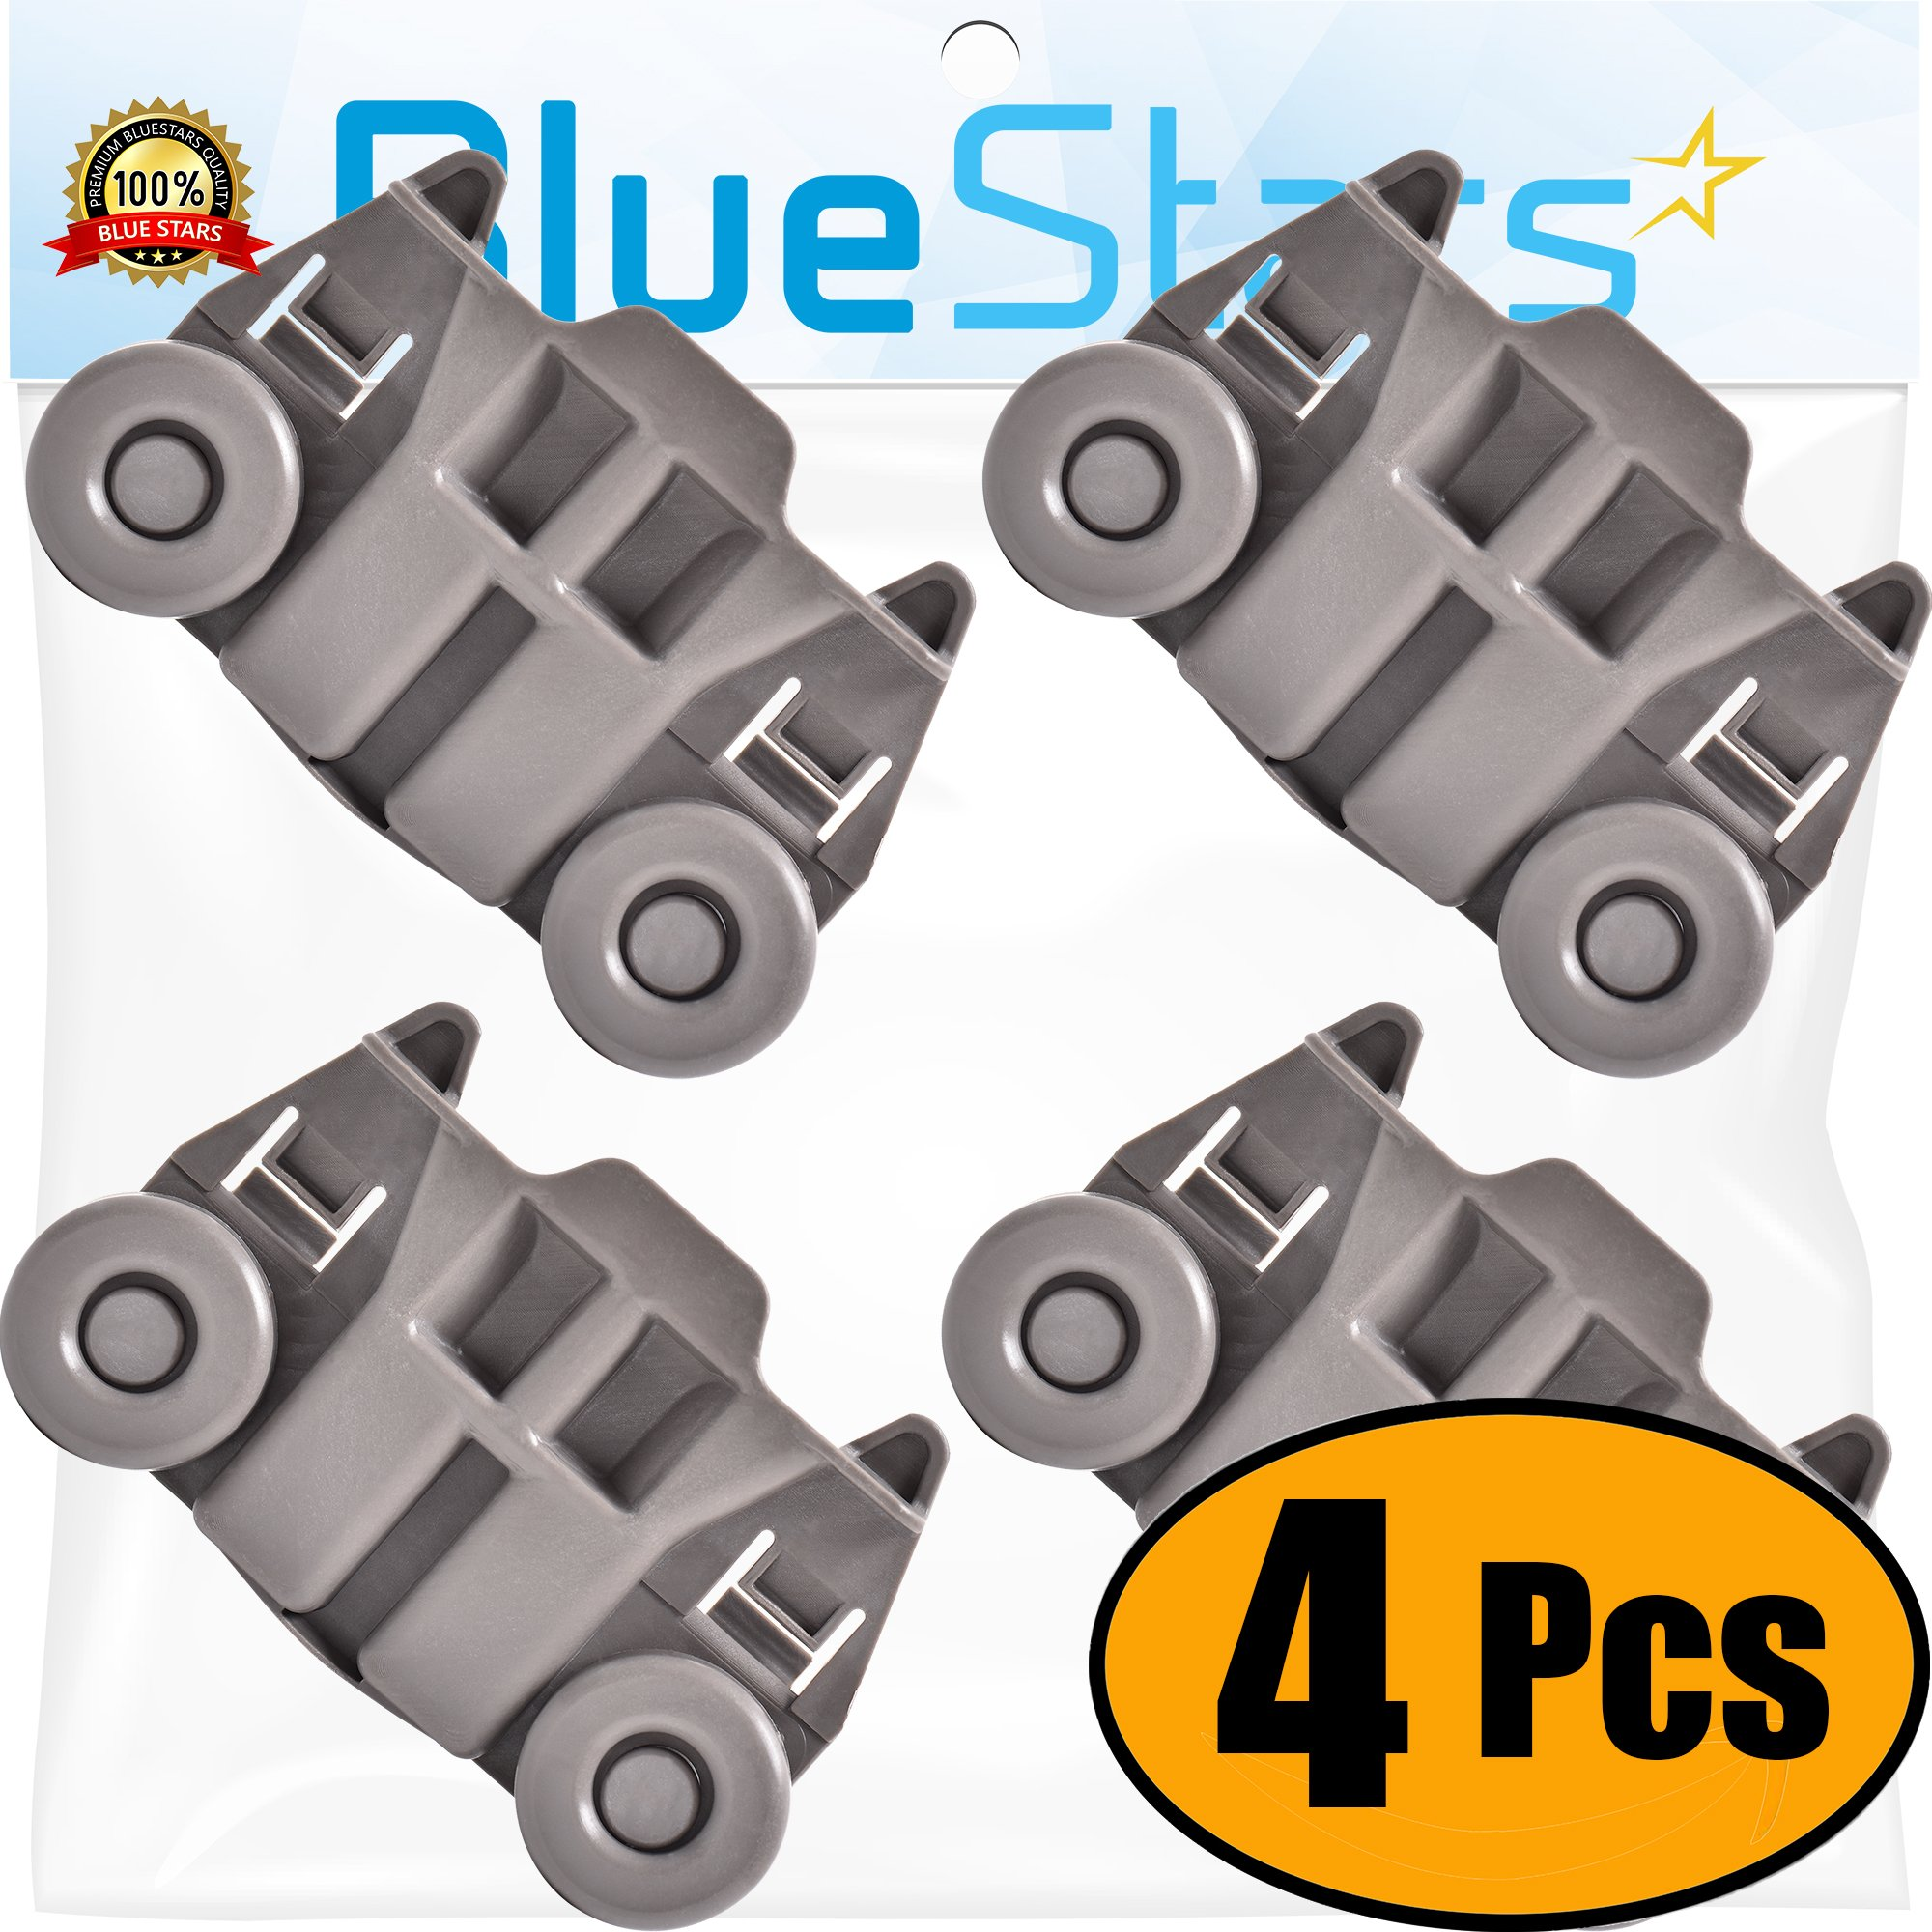 Ultra Durable W10195417 Dishwasher Track Replacement Part by Blue Stars – Exact Fit For Whirlpool & Kenmore Dishwashers – Replaces WPW10195417 WPW10195417VP - PACK OF 4